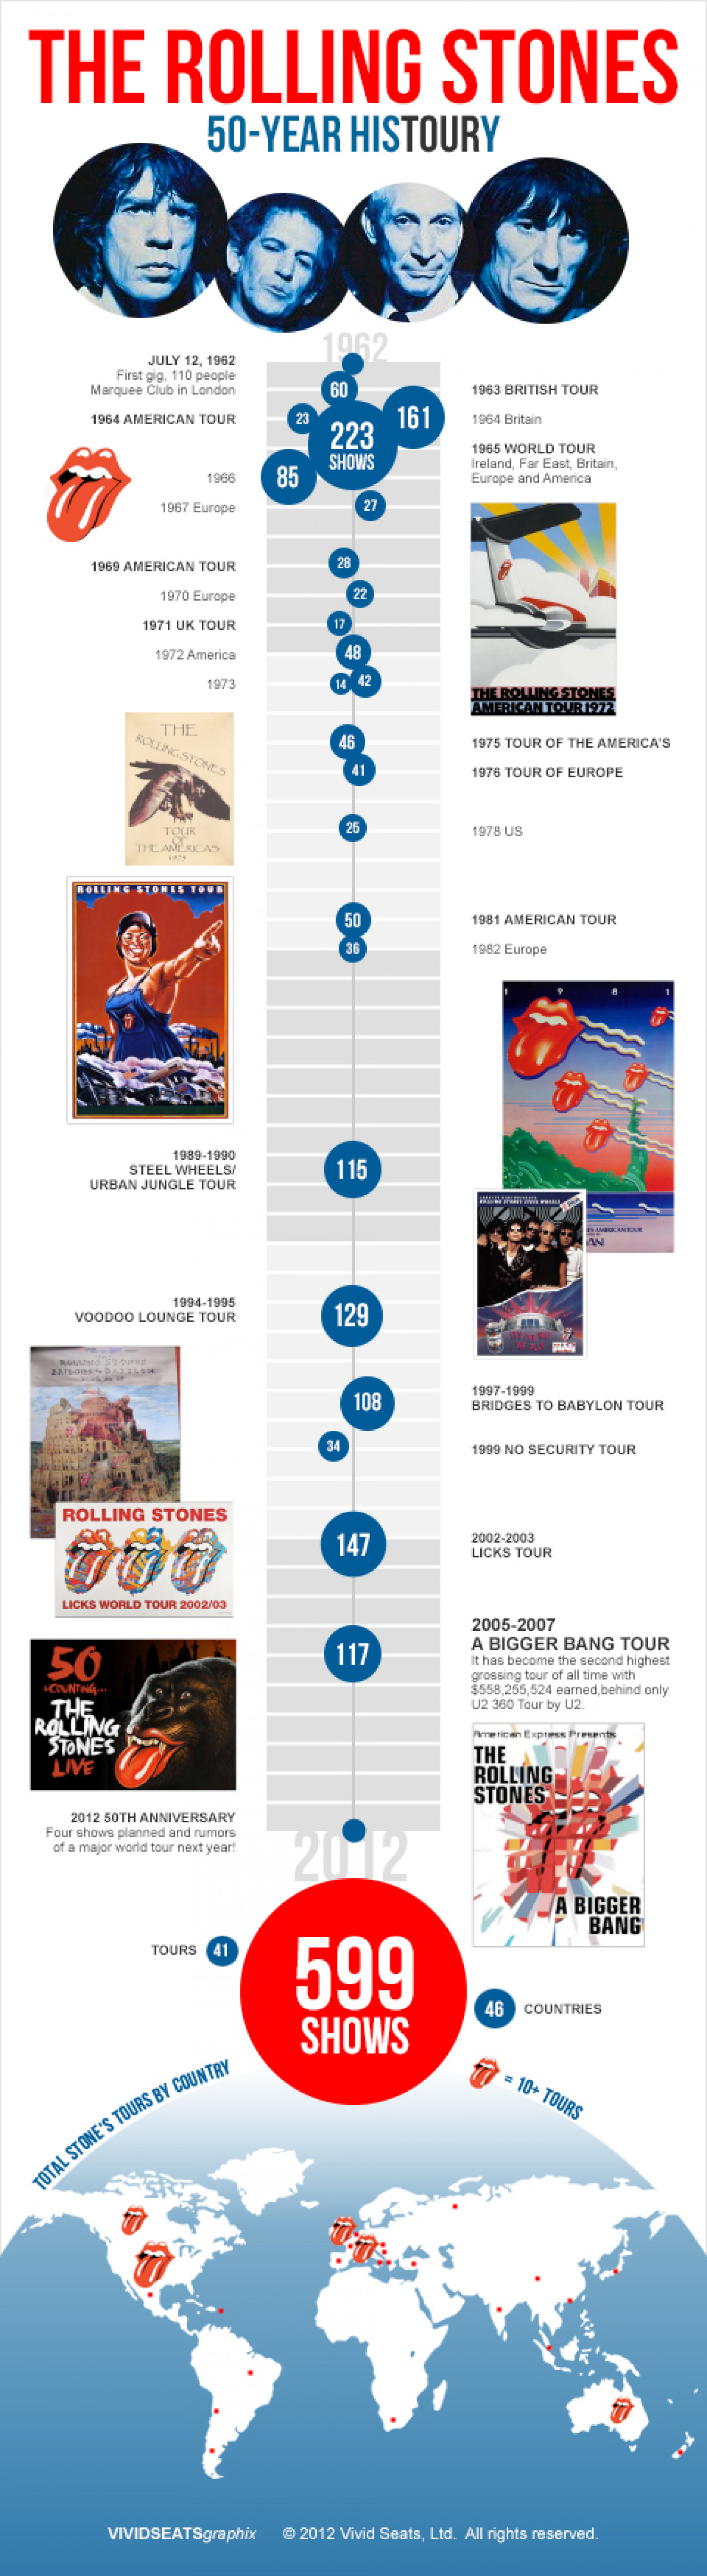 The Rolling Stones: 50 Years of HisTOURy Infographic